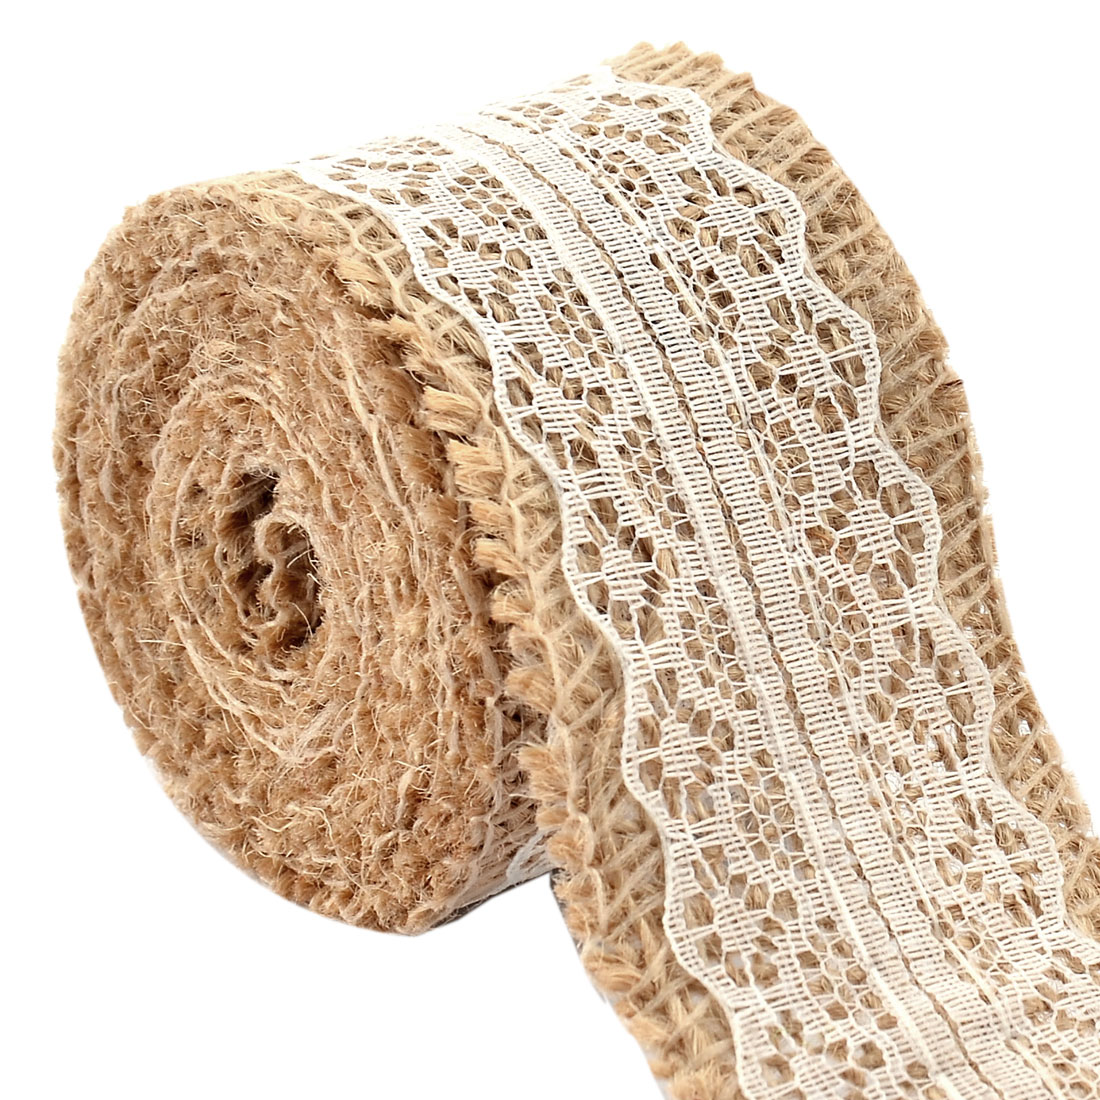 Burlap Belt Strap String Crafting Lace Ribbon Roll White 2.2 Yards for Wedding Decor